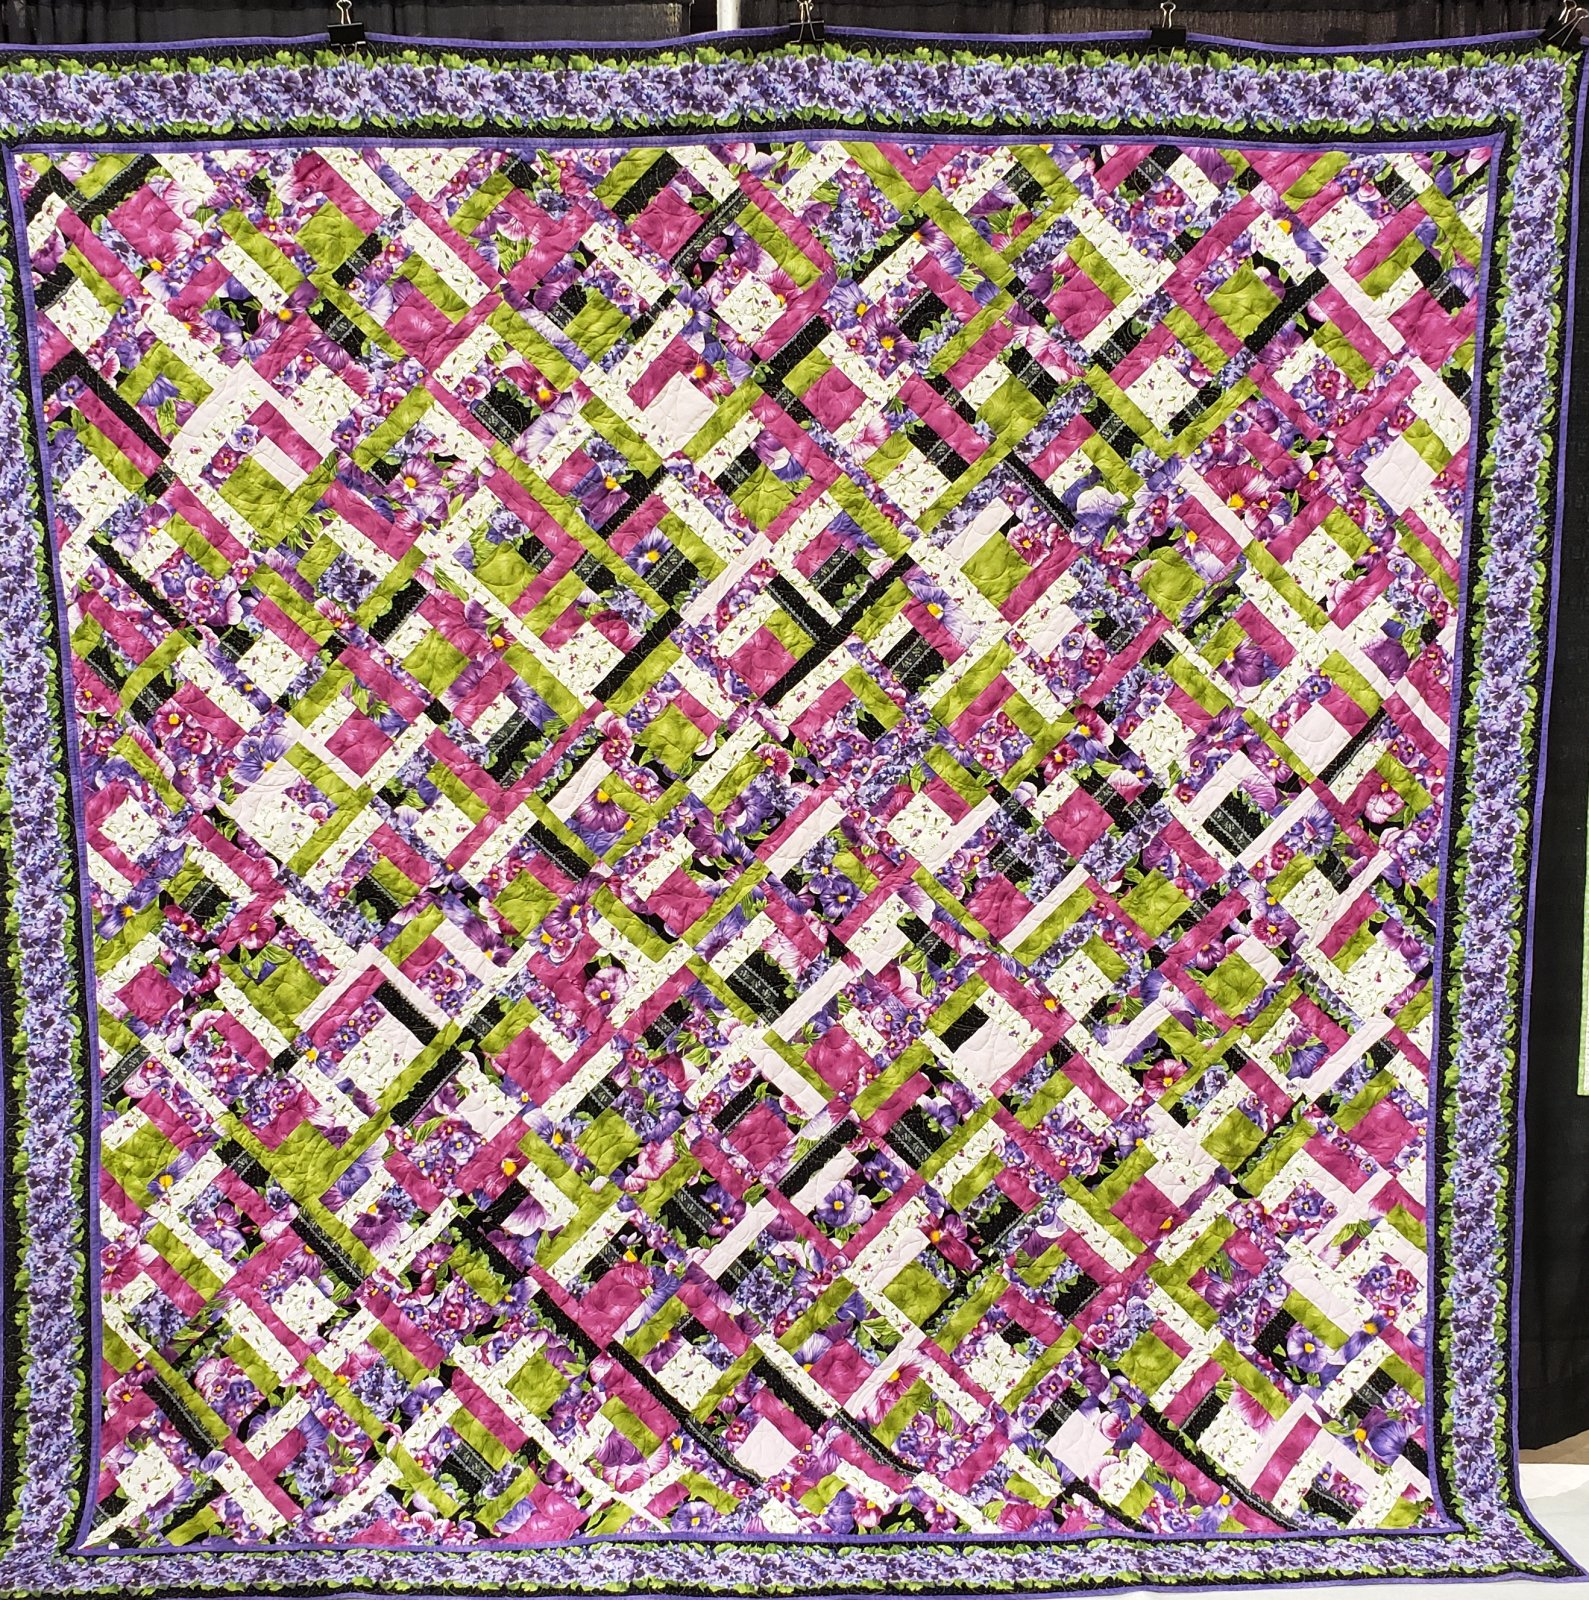 2019 Quilt Show Quilts Group 1 Of 2 Public Pictures Only